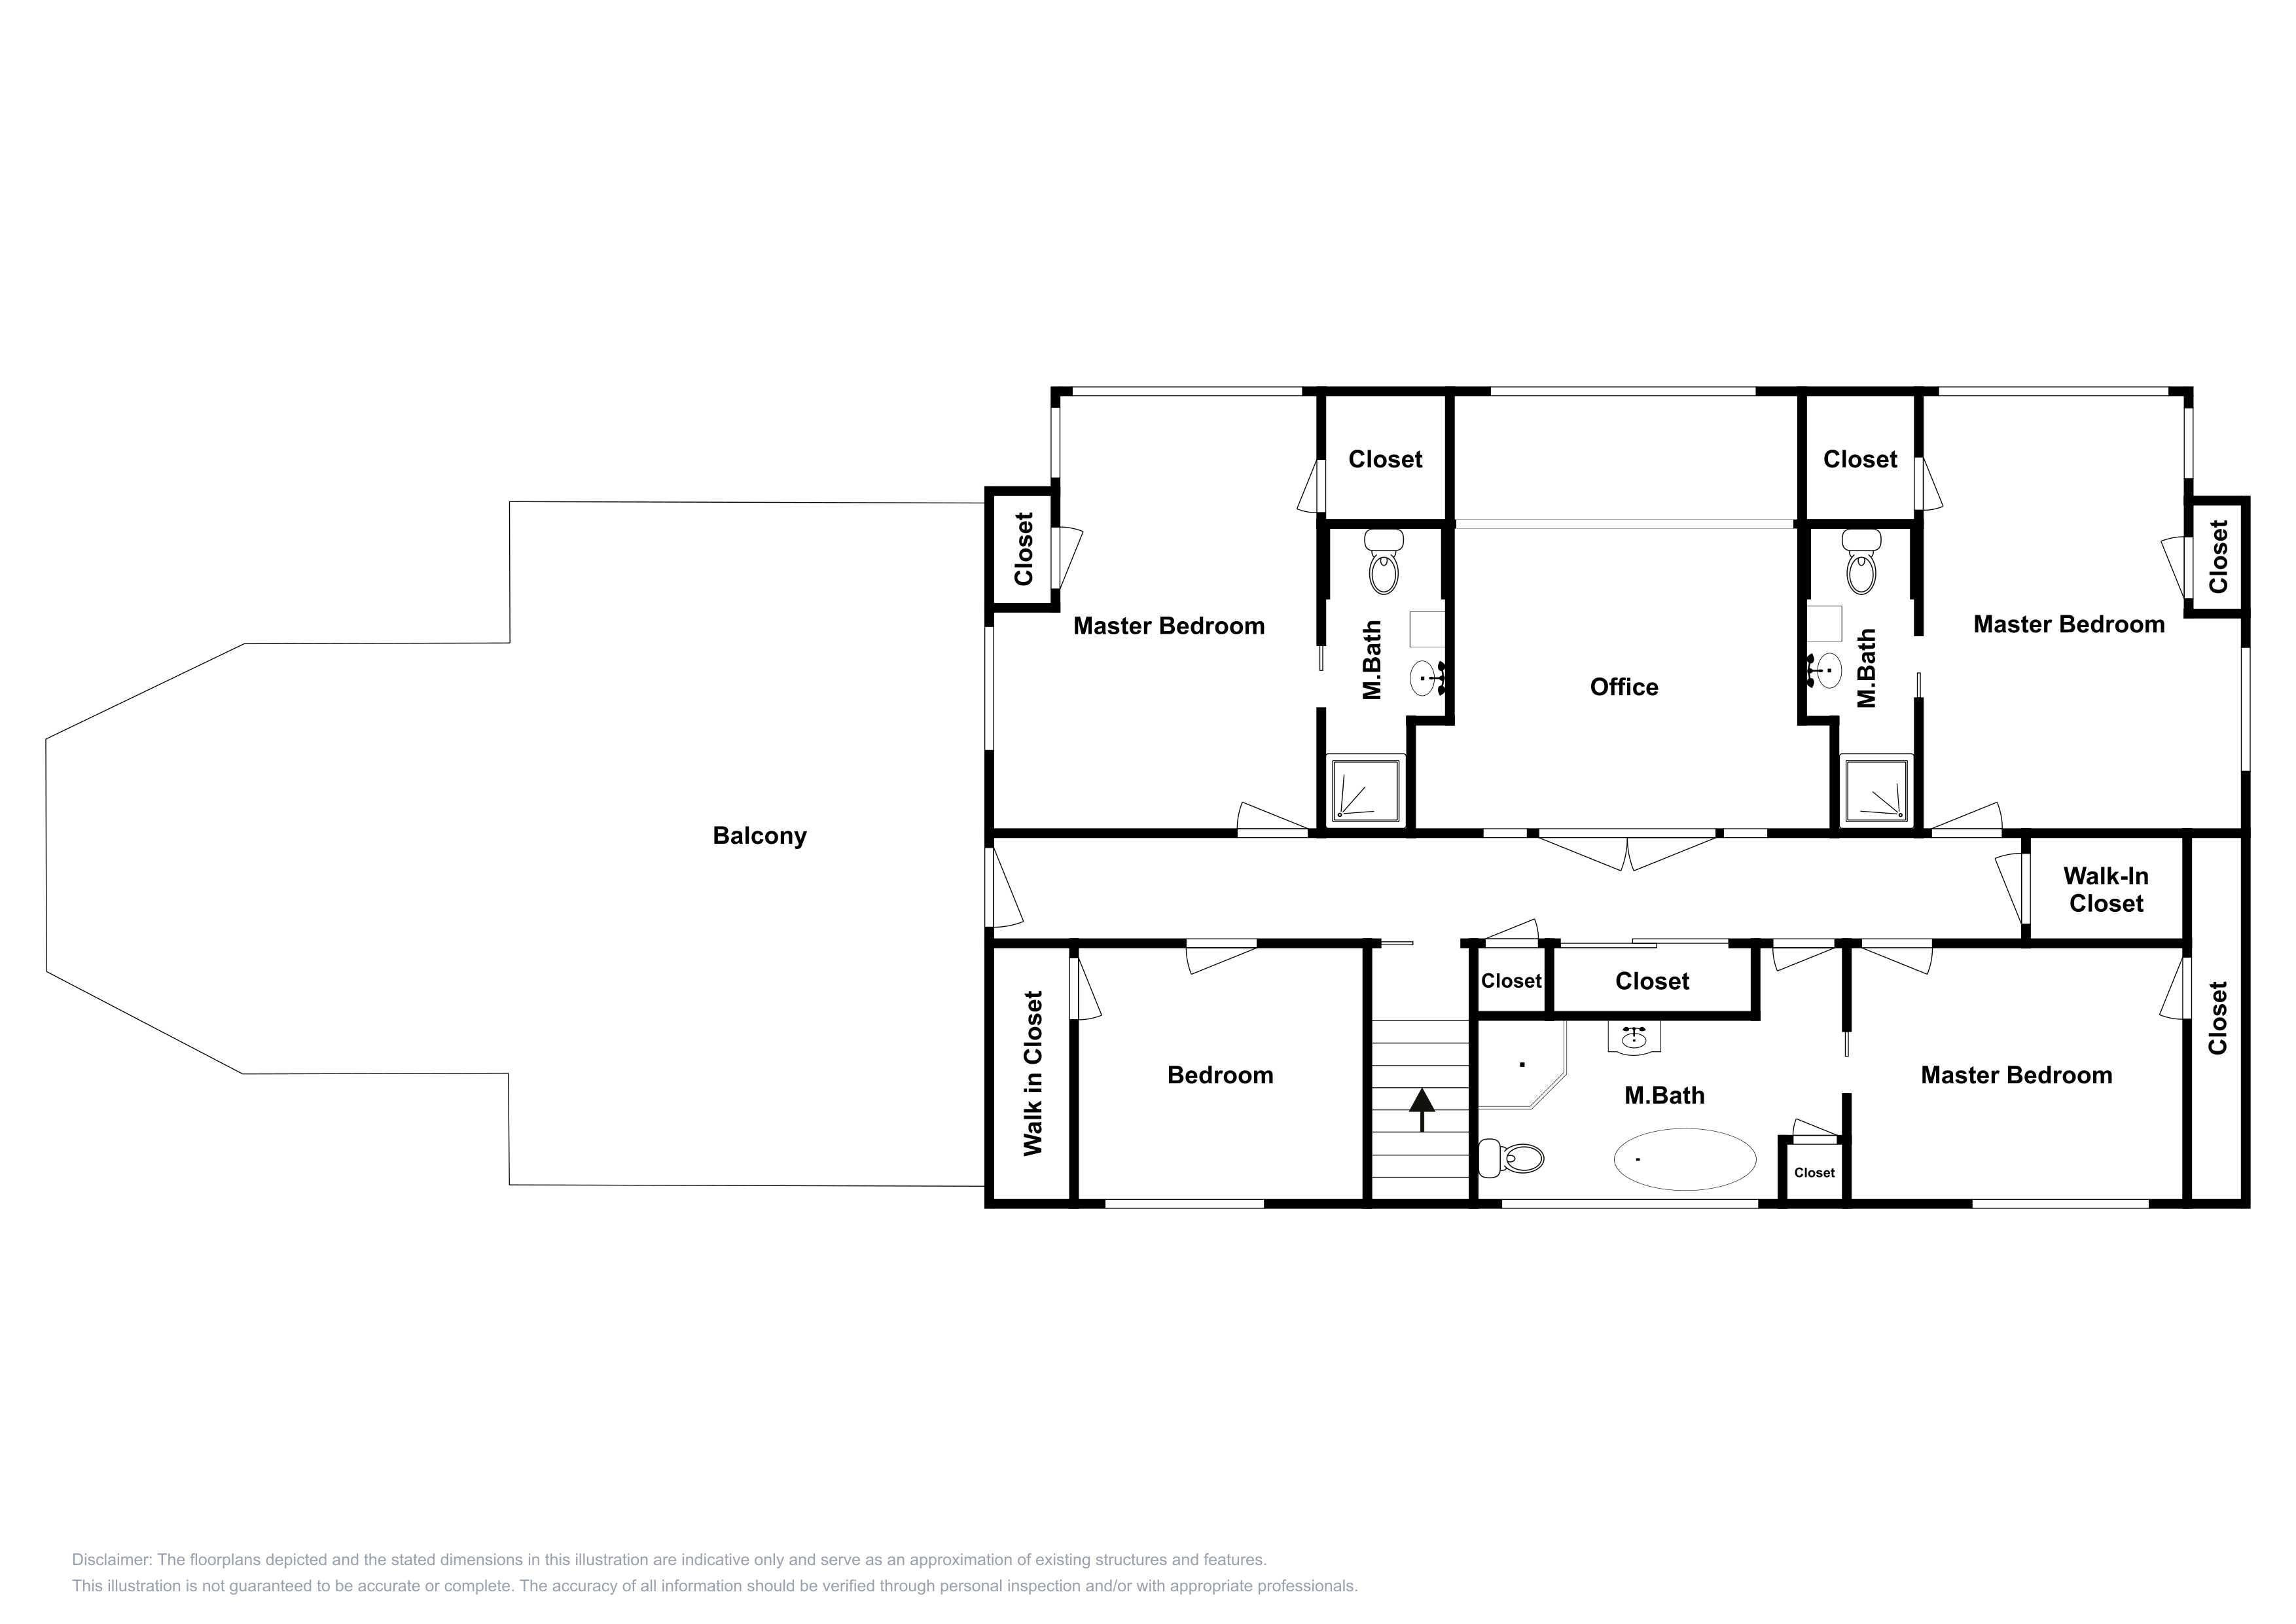 Second floor: This floor plan is an approximation and may not include the most recent information.